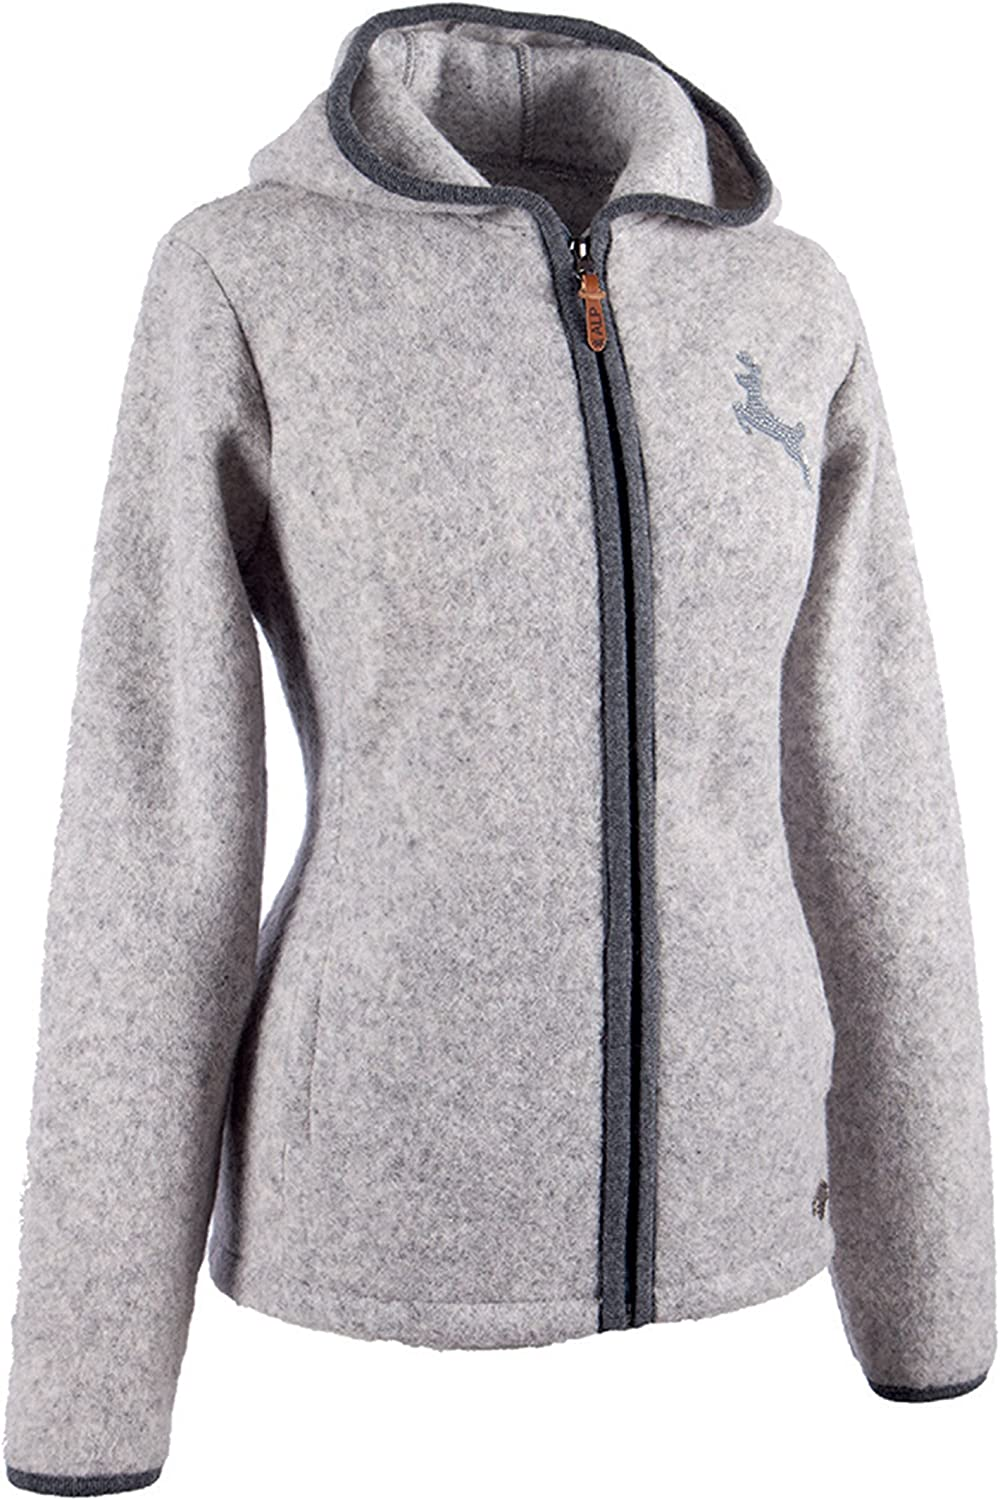 Alp by Brush Ladies New WashableWool Jacket with Hood and Embroidery and Strass